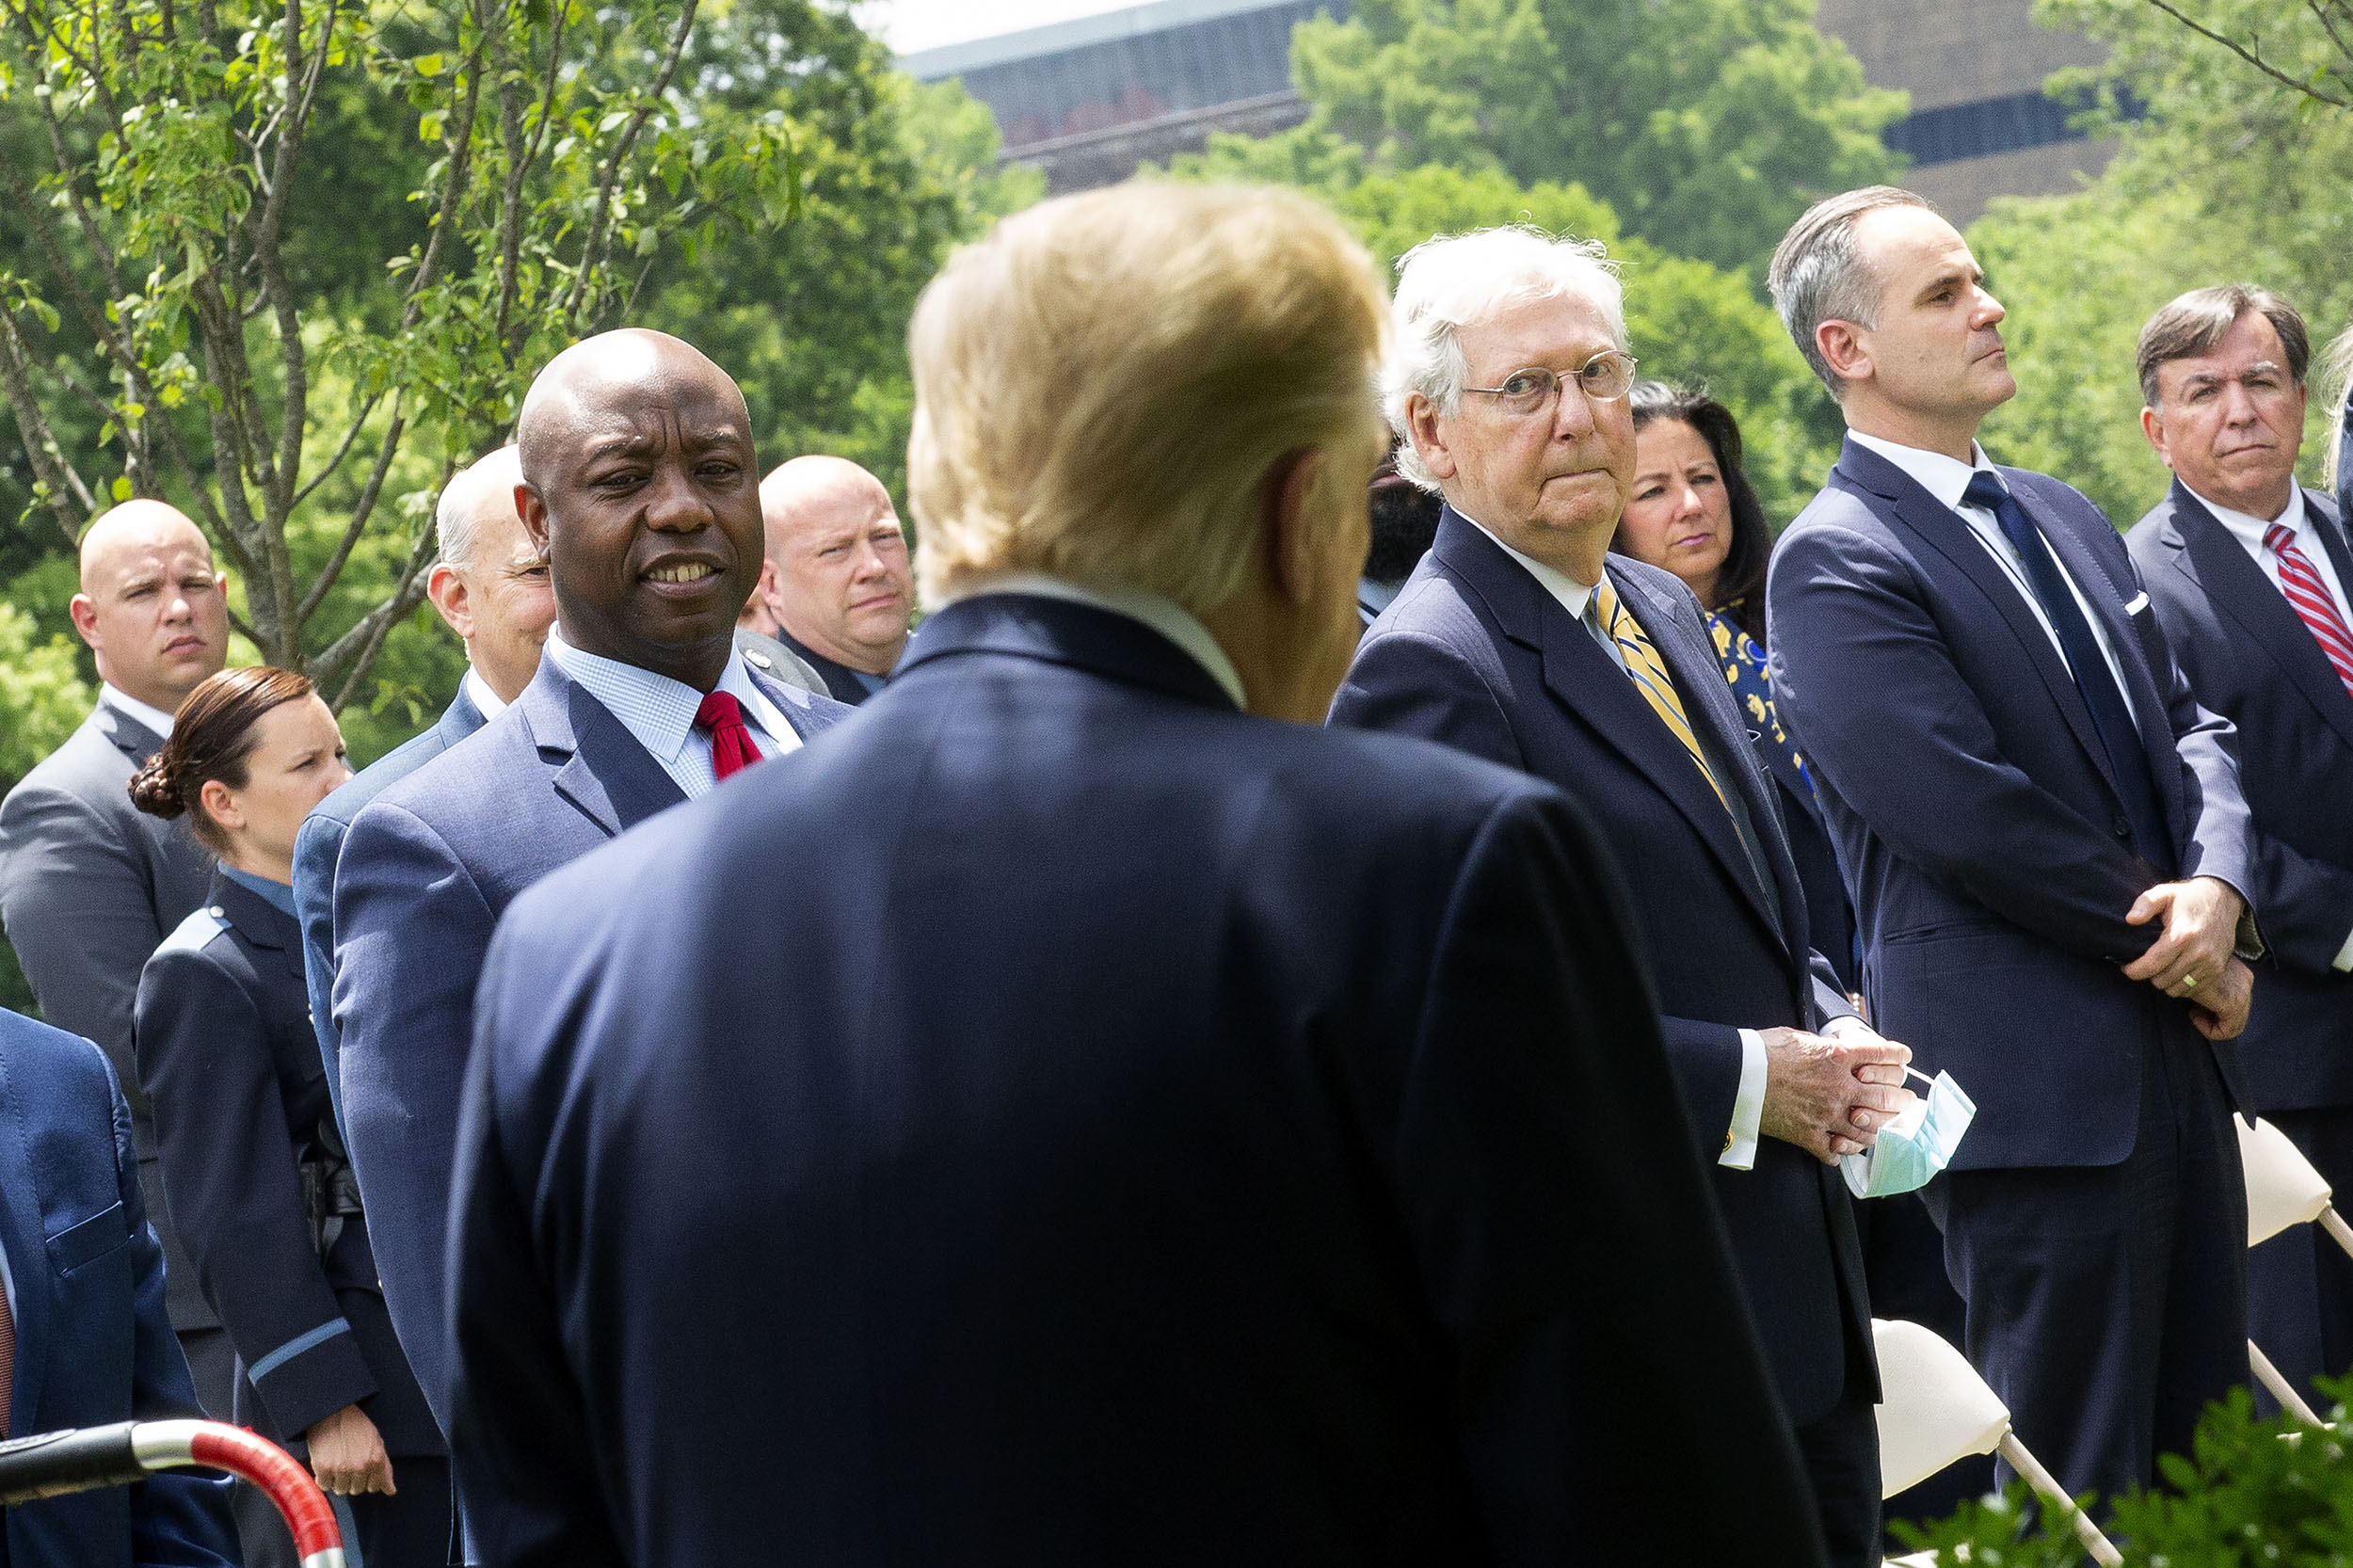 Sen. Tim Scott (R-S.C.), left, and Sen. Majority Leader Mitch McConnell (R-Ky.), right, look towards US President Donald Trump as he arrives to the Rose Garden to sign an Executive Order on Safe Policing for Safe Communities in the Rose Garden of the White House in Washington DC, on Tuesday, June 16.